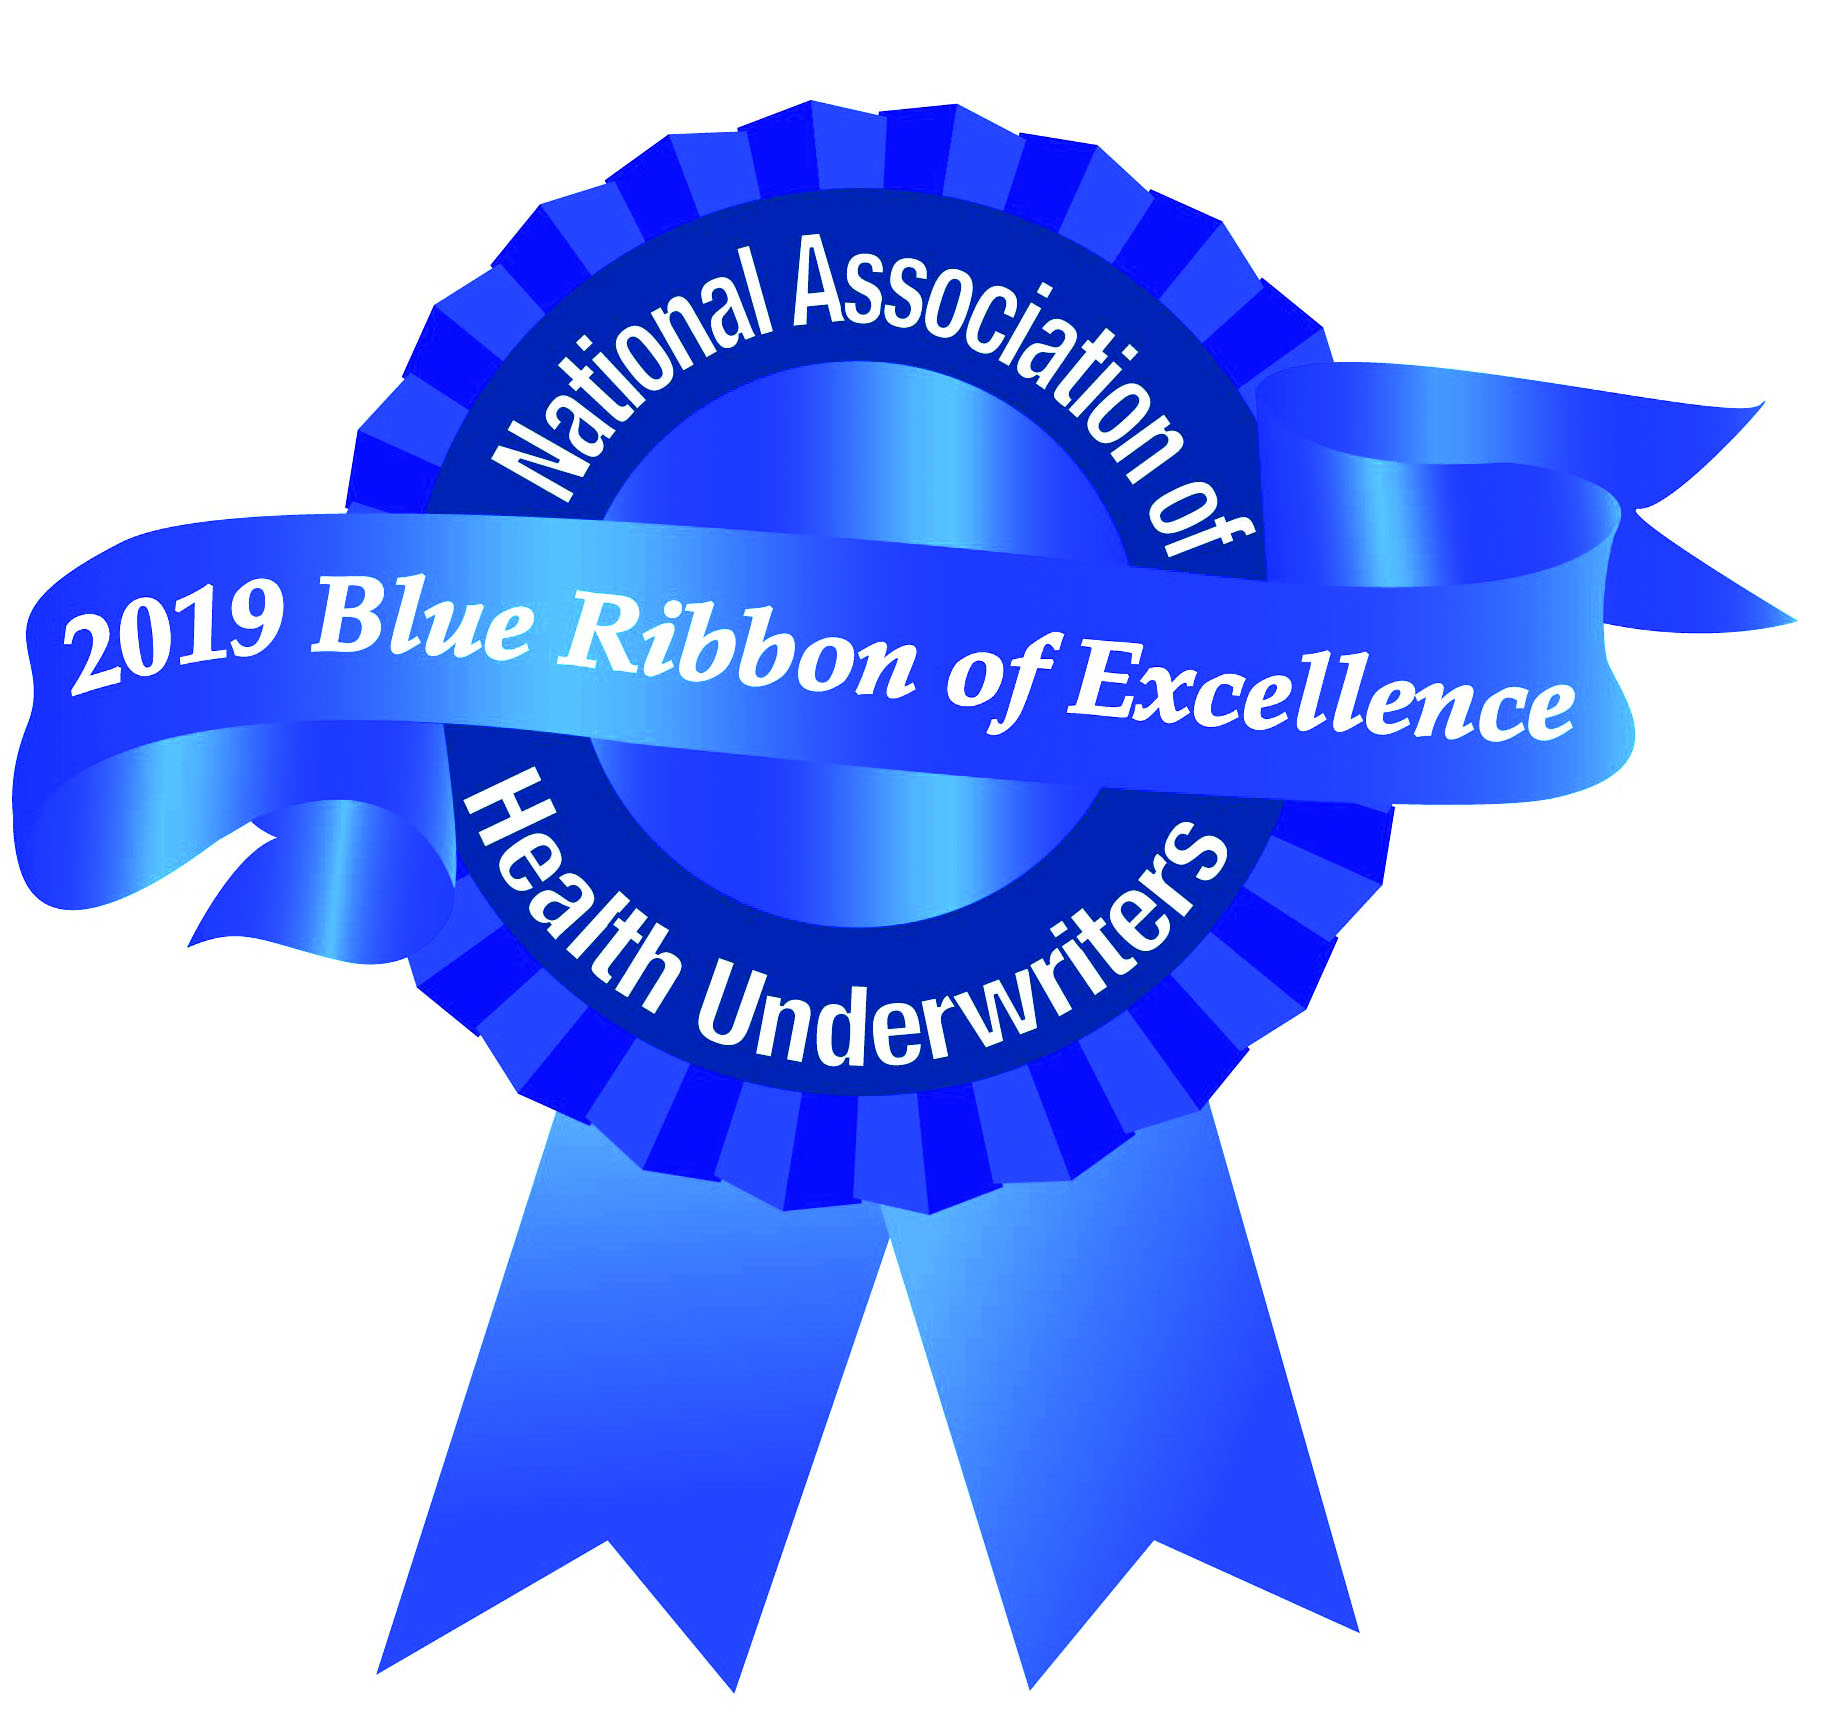 BlueRibbonEx2019